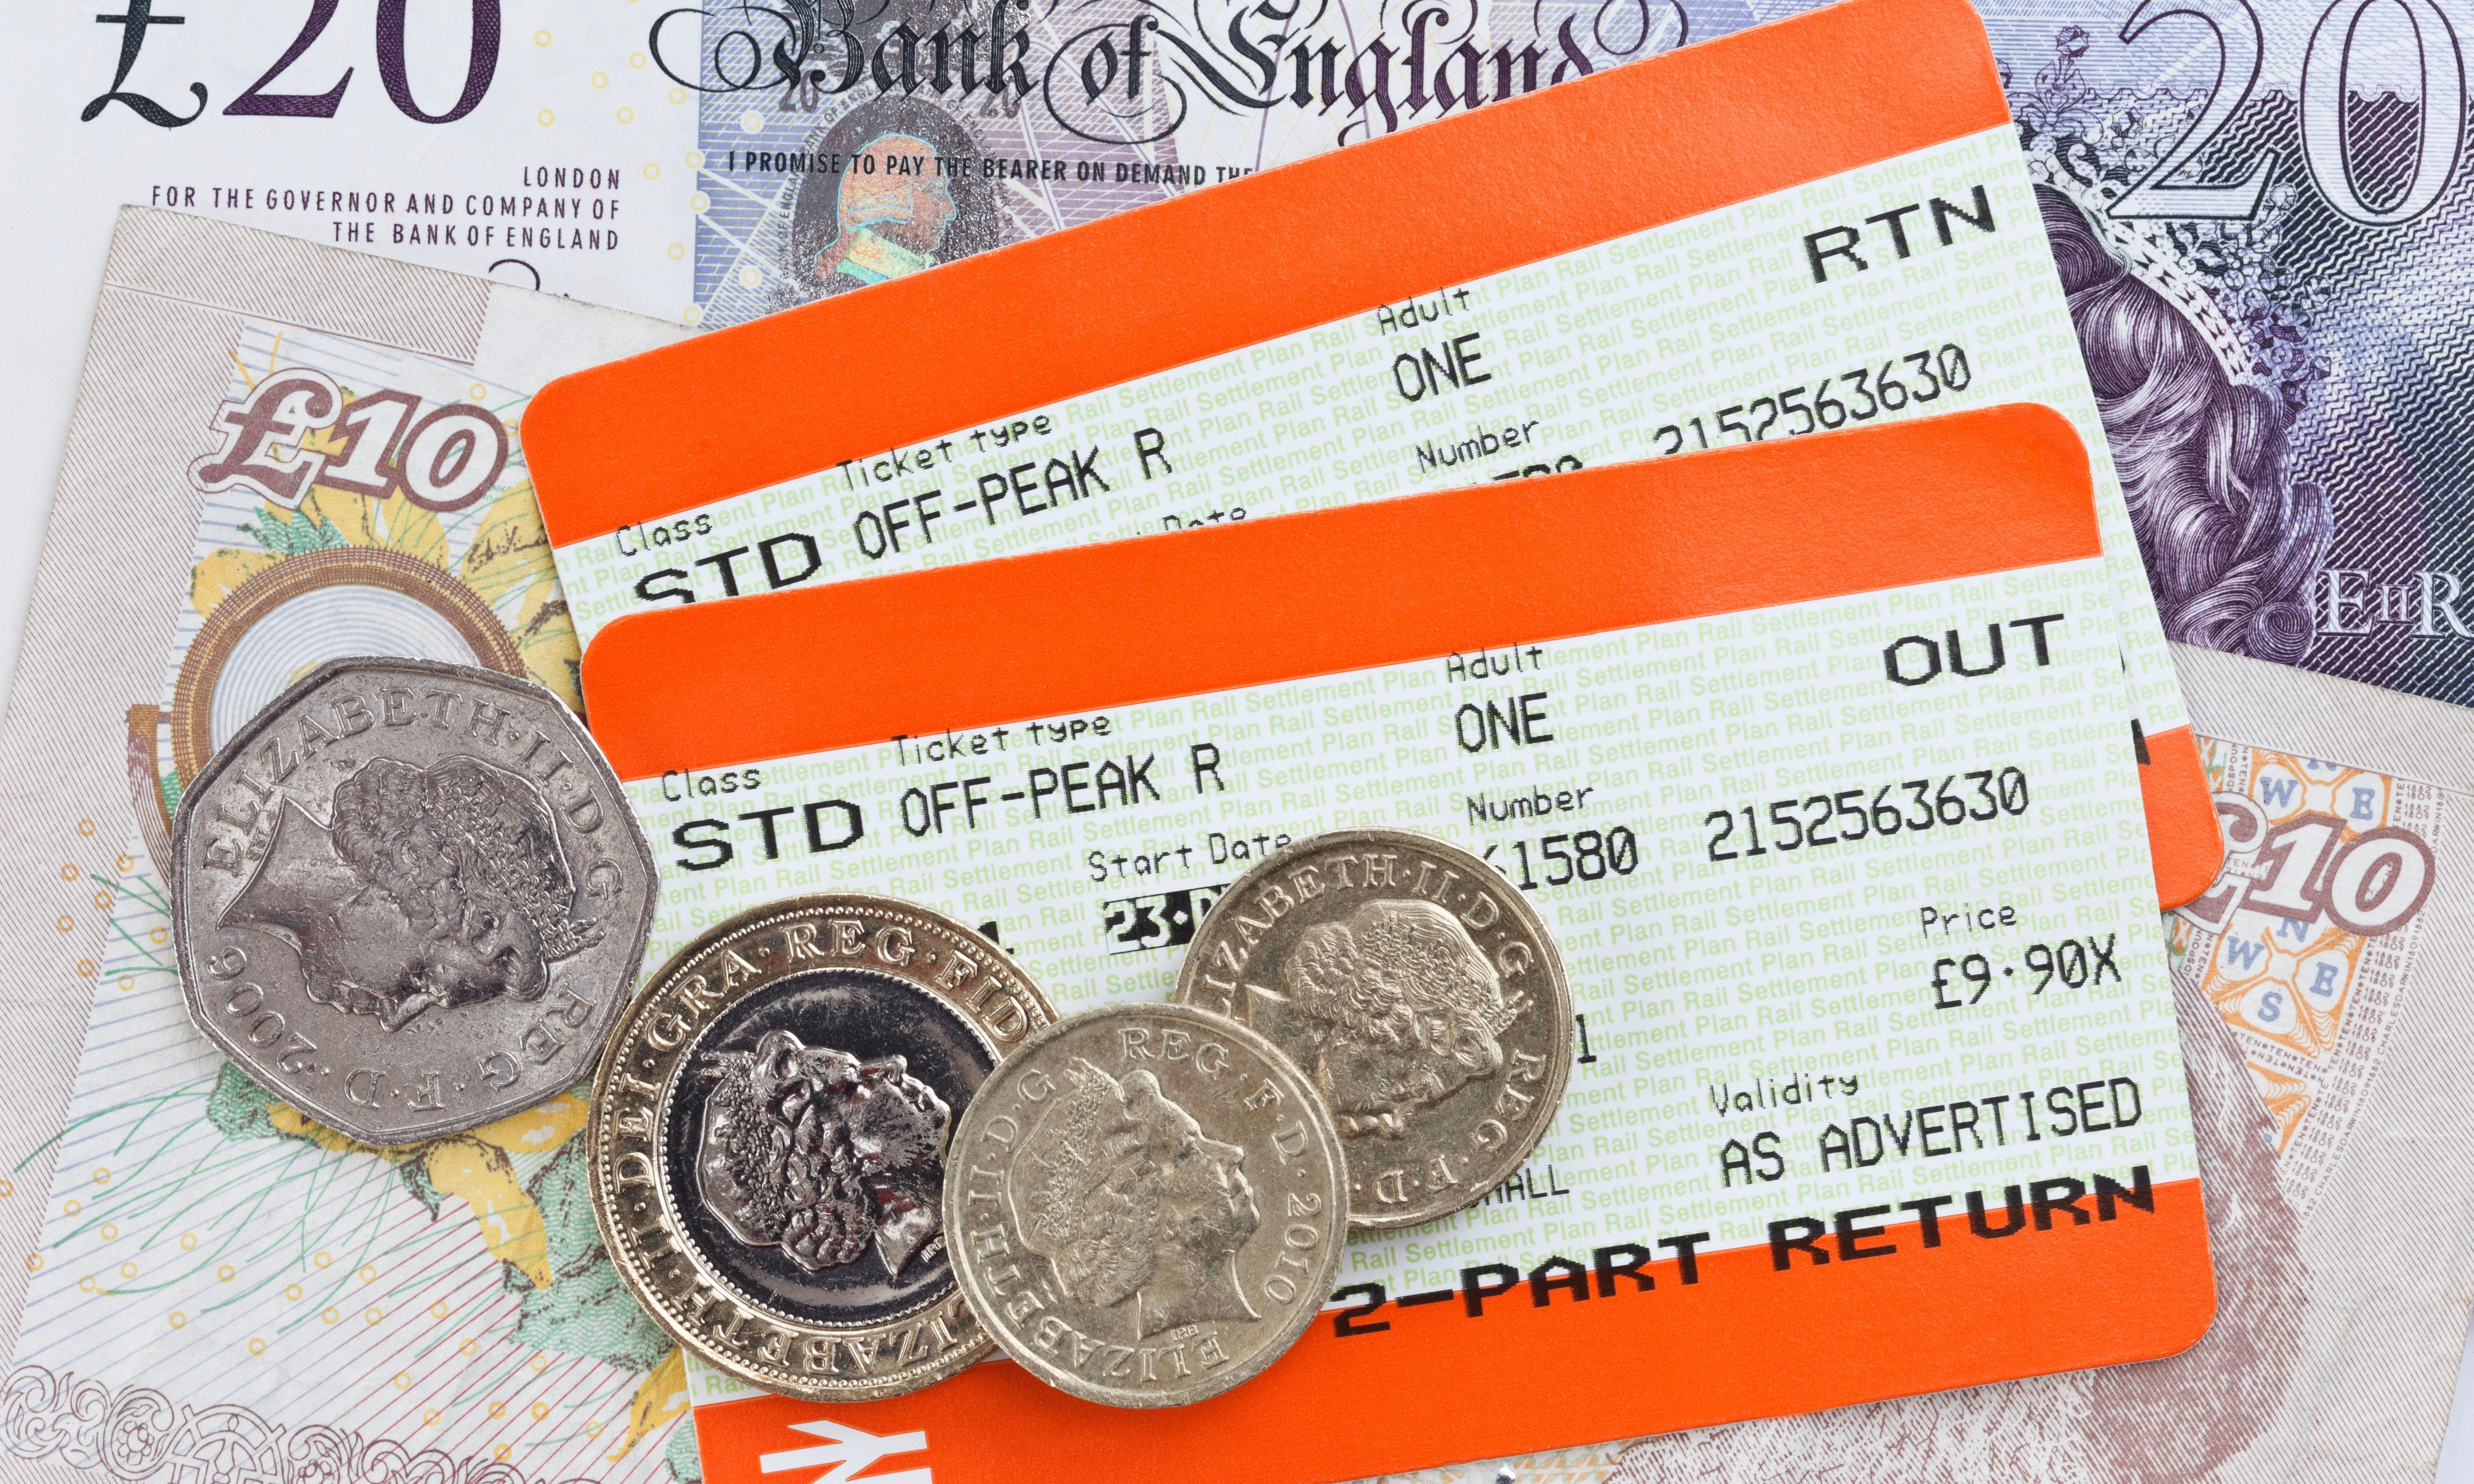 How can Southern Rail charge two prices for the same journey?